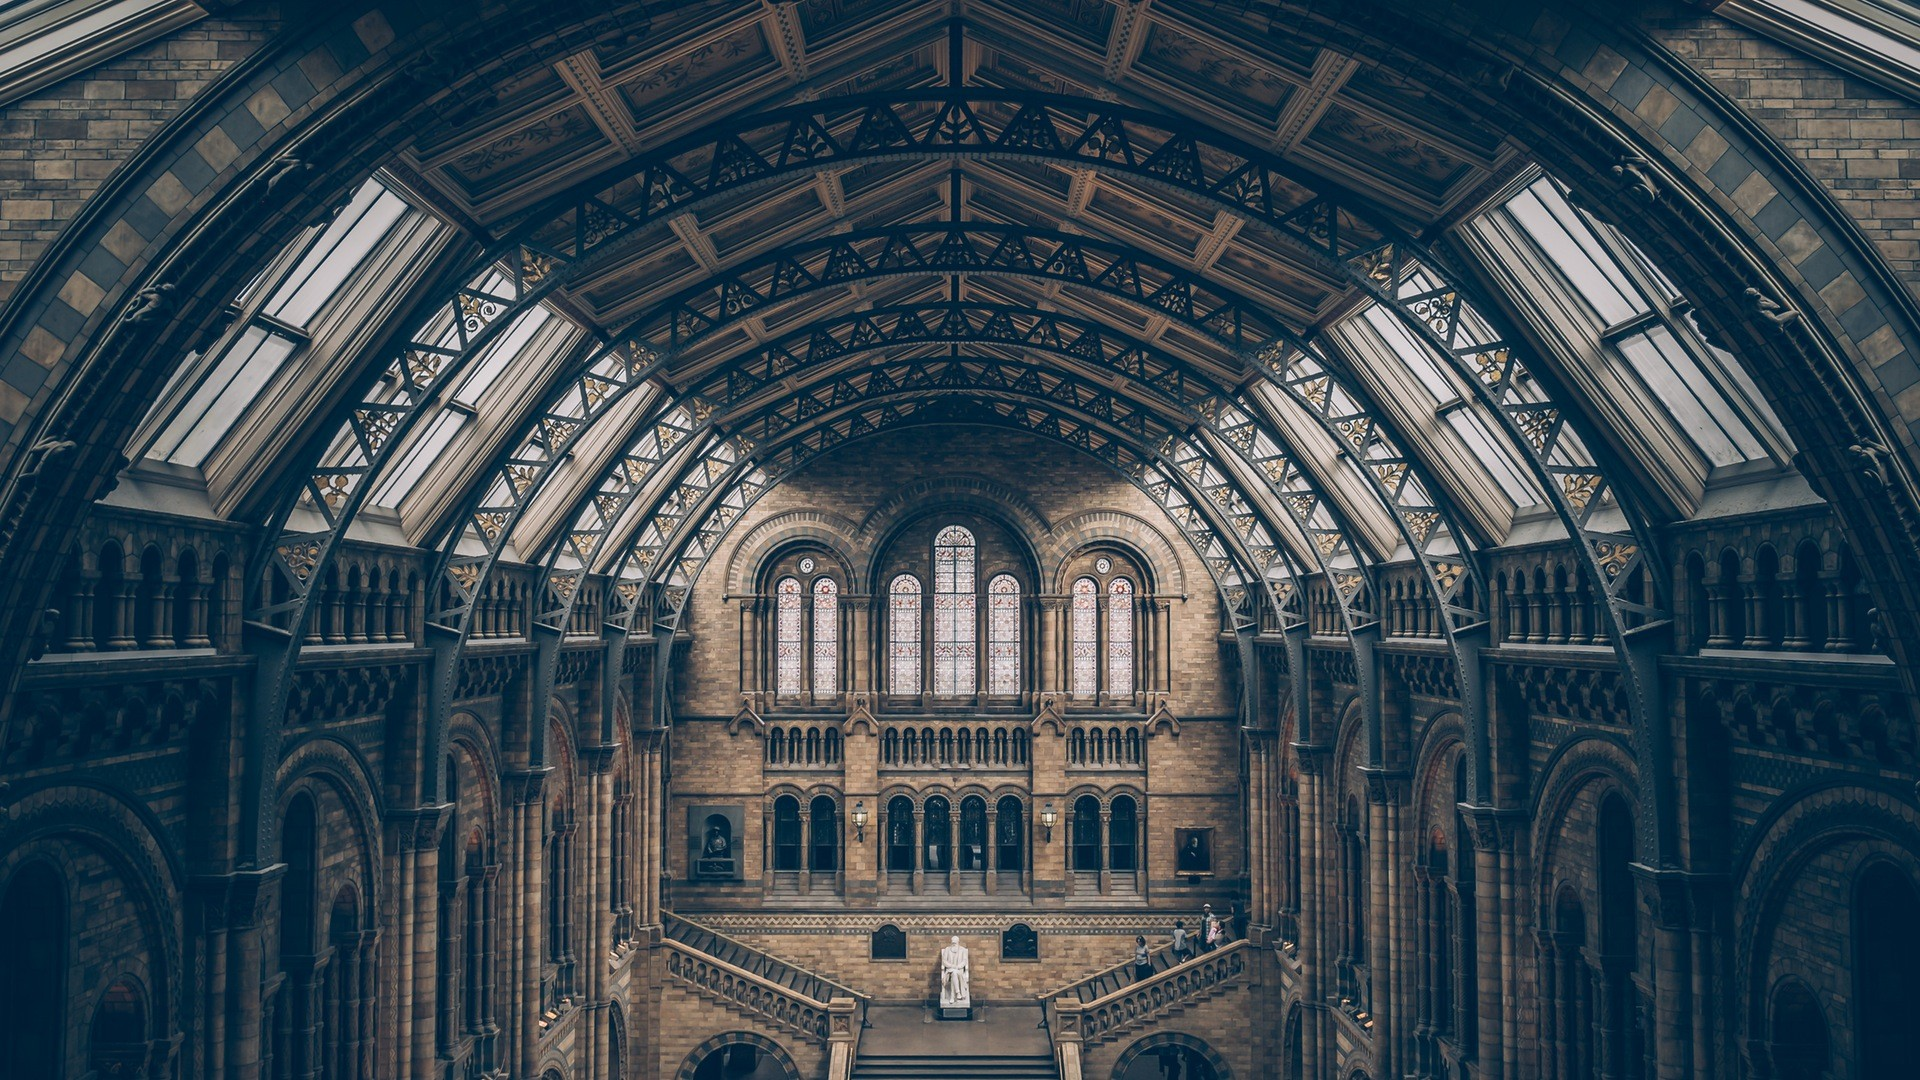 General 1920x1080 architecture building museum London UK England history interior arch stairs old building bricks